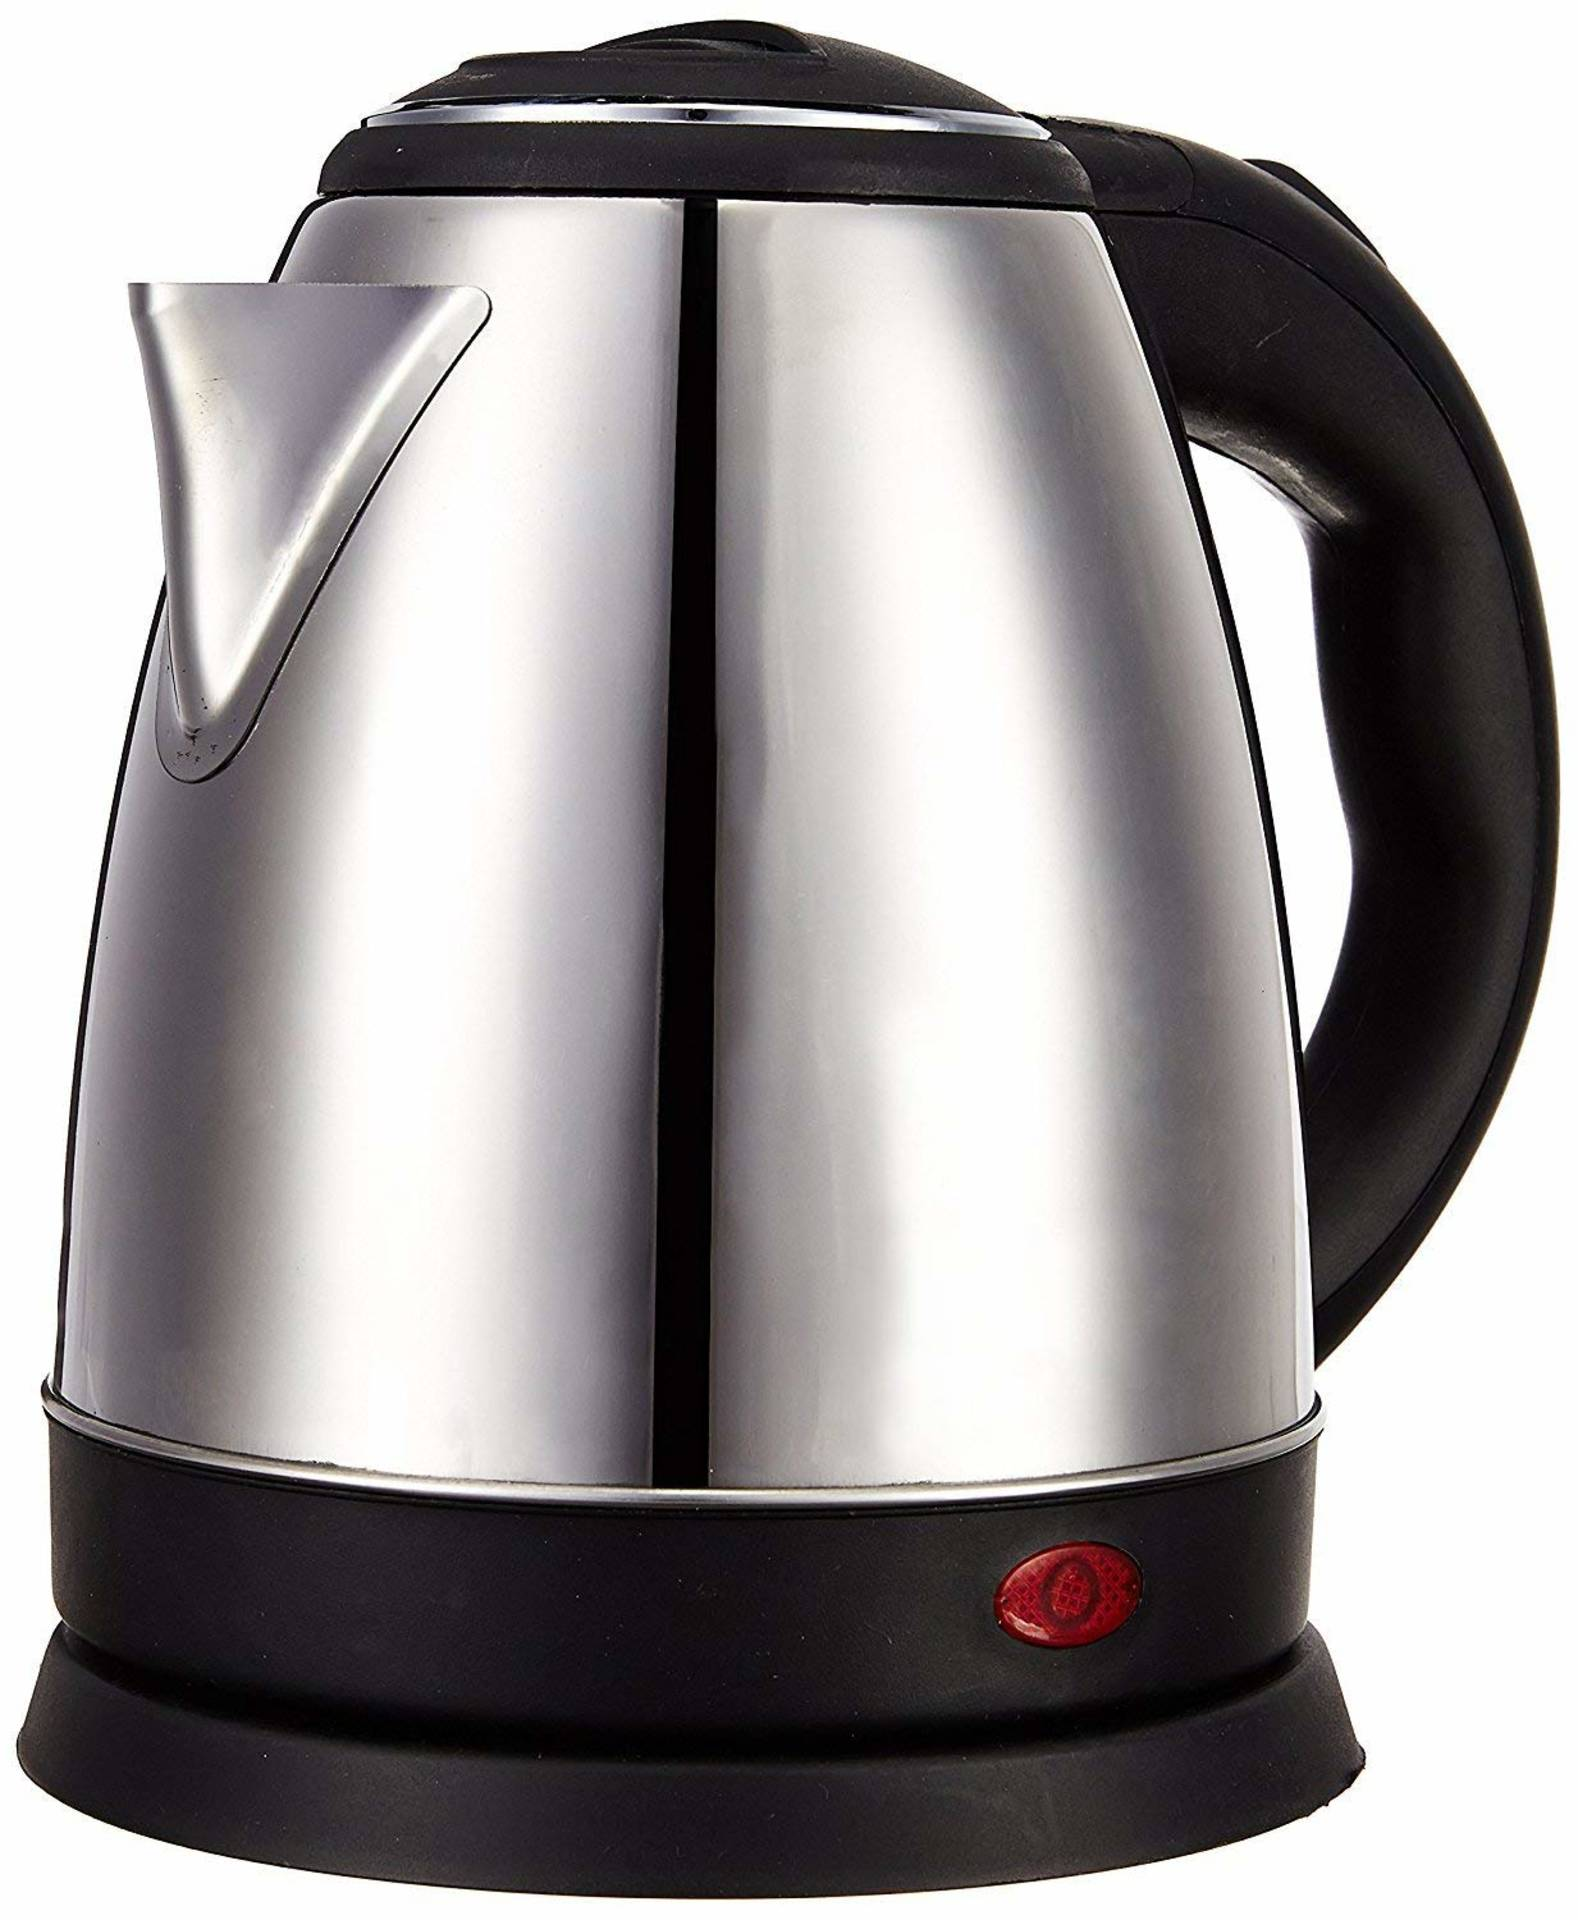 Snowbird Stainless Steel 1500W Maxx Series 1.8 L Electric Kettle @ Rs.250 After 95% Cashback